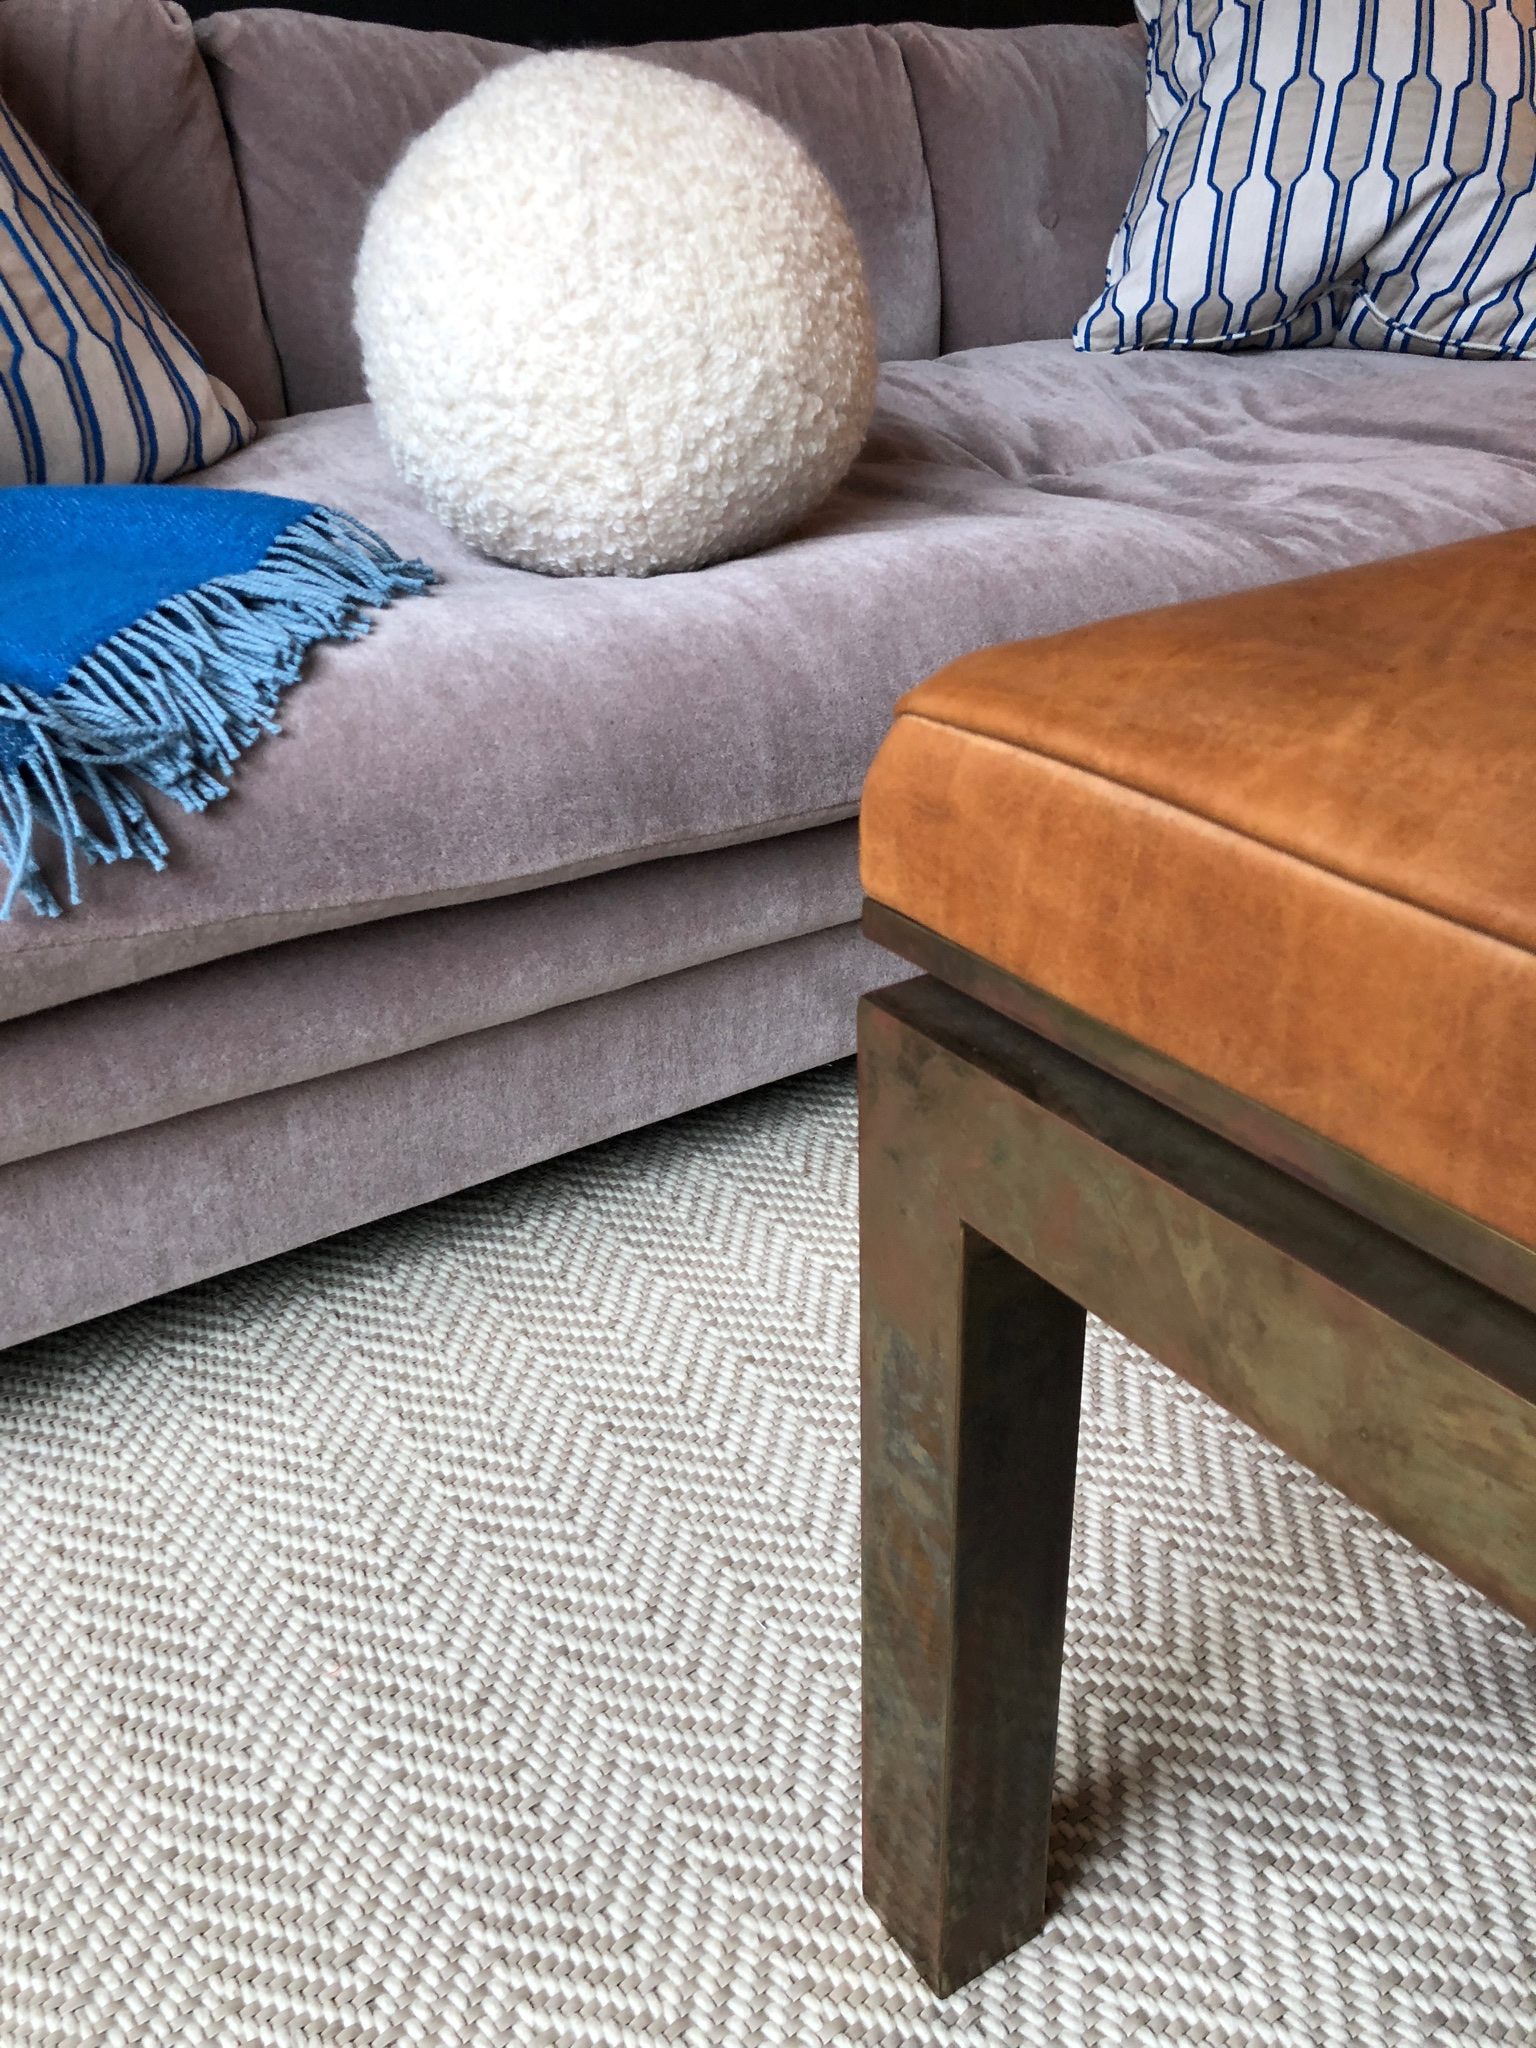 handwoven-rug-by-liz-caan-interior-design-TOWN-Fast-and-Luxurious